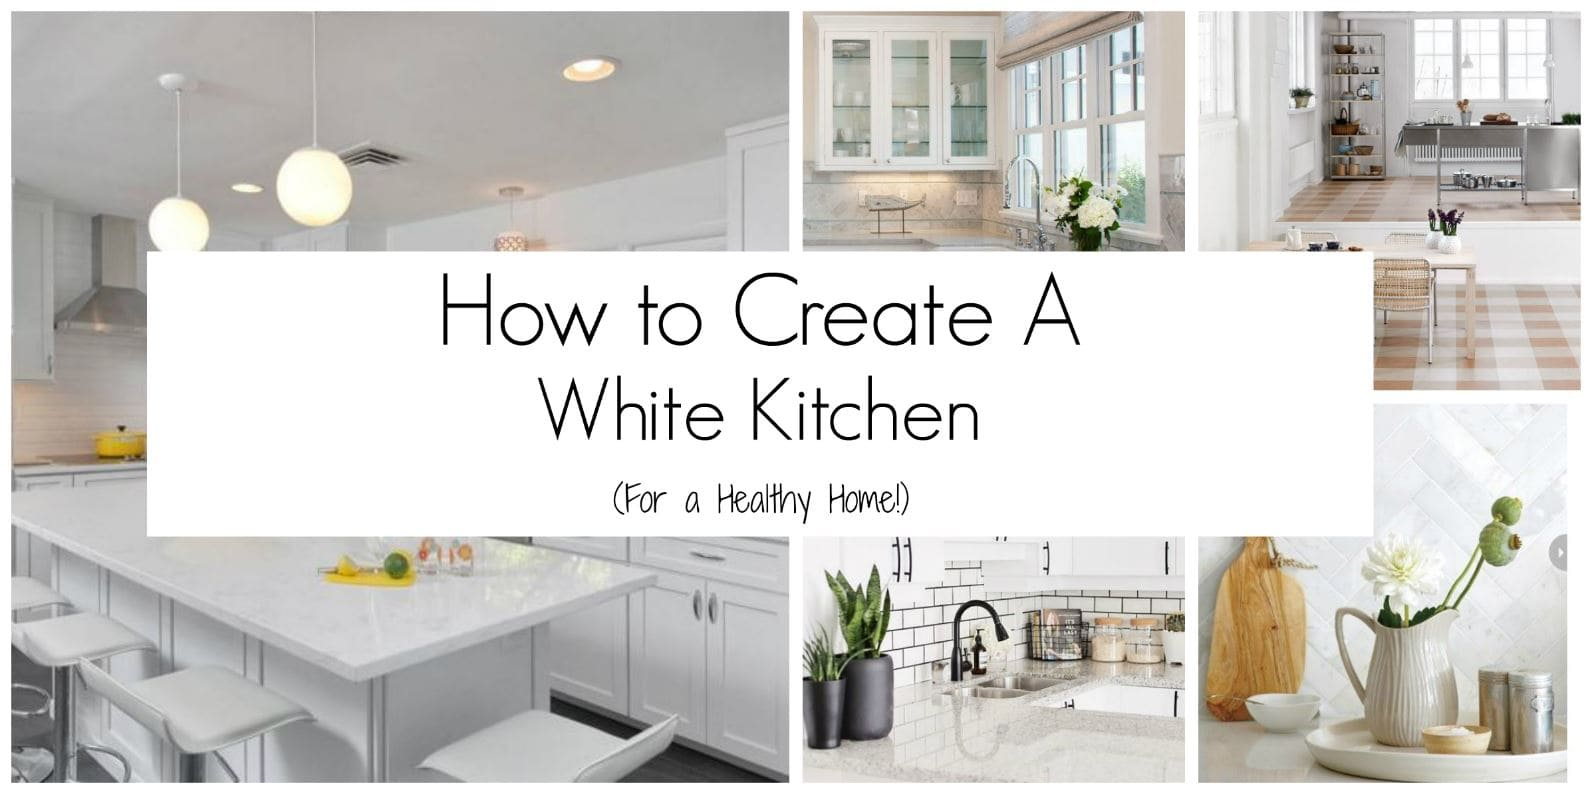 How to Create a White Kitchen - Get Green Be Well